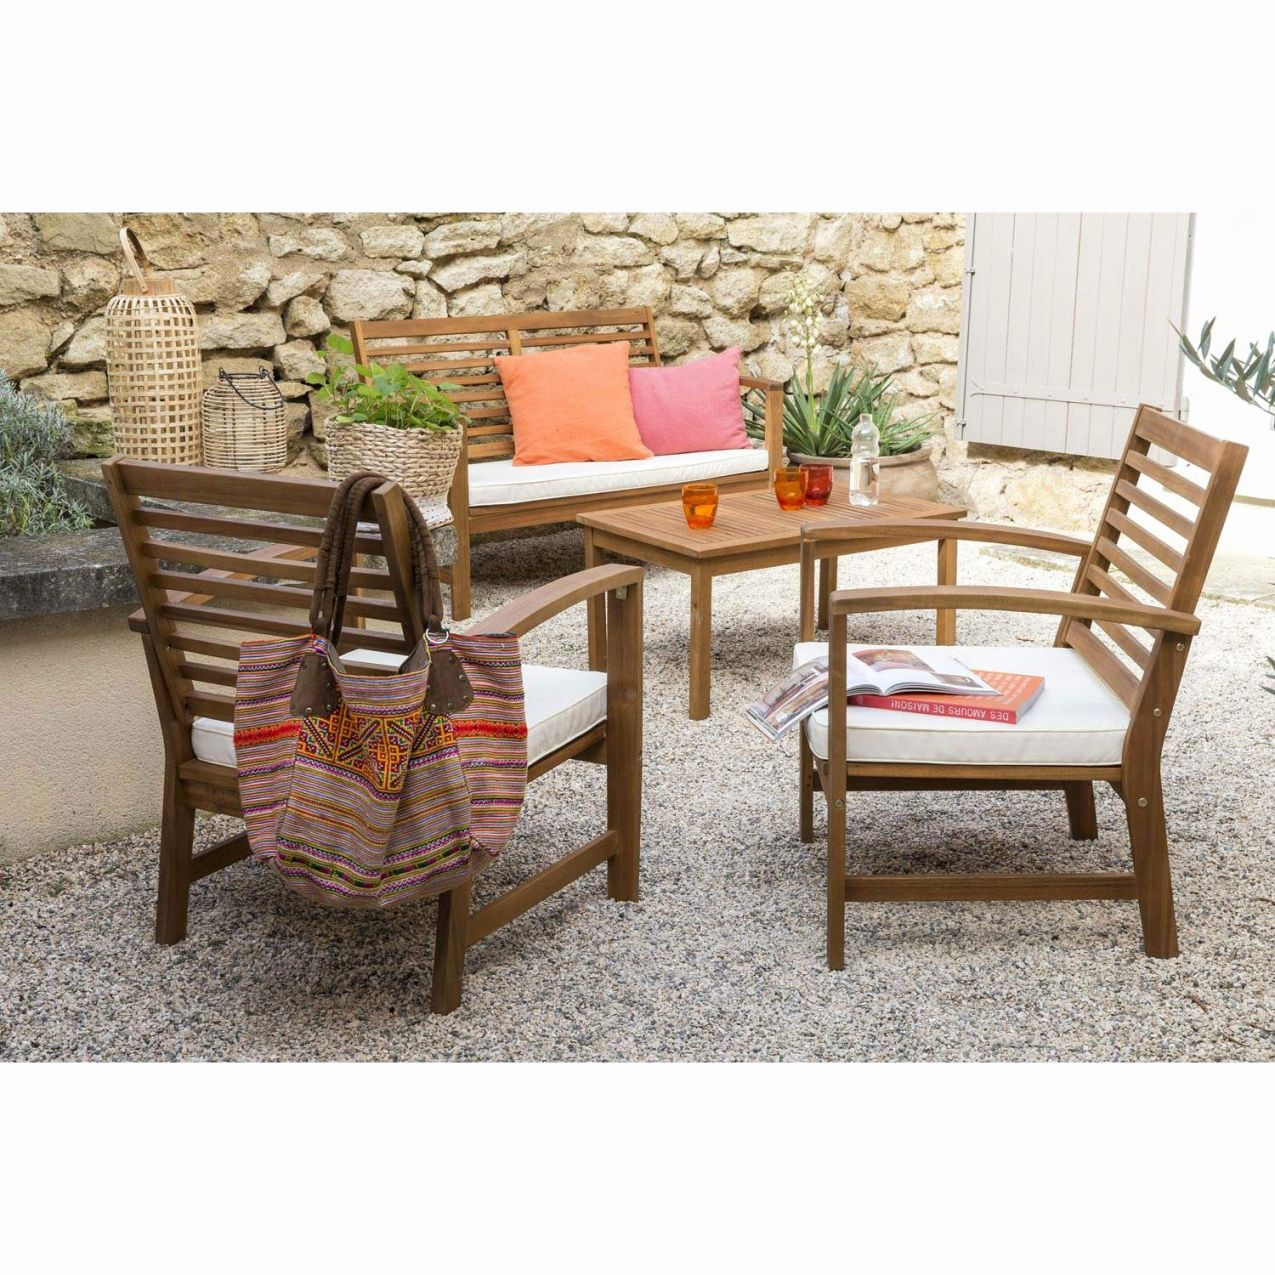 70 Fauteuil Rotin Leroy Merlin 2019 With Images Outdoor